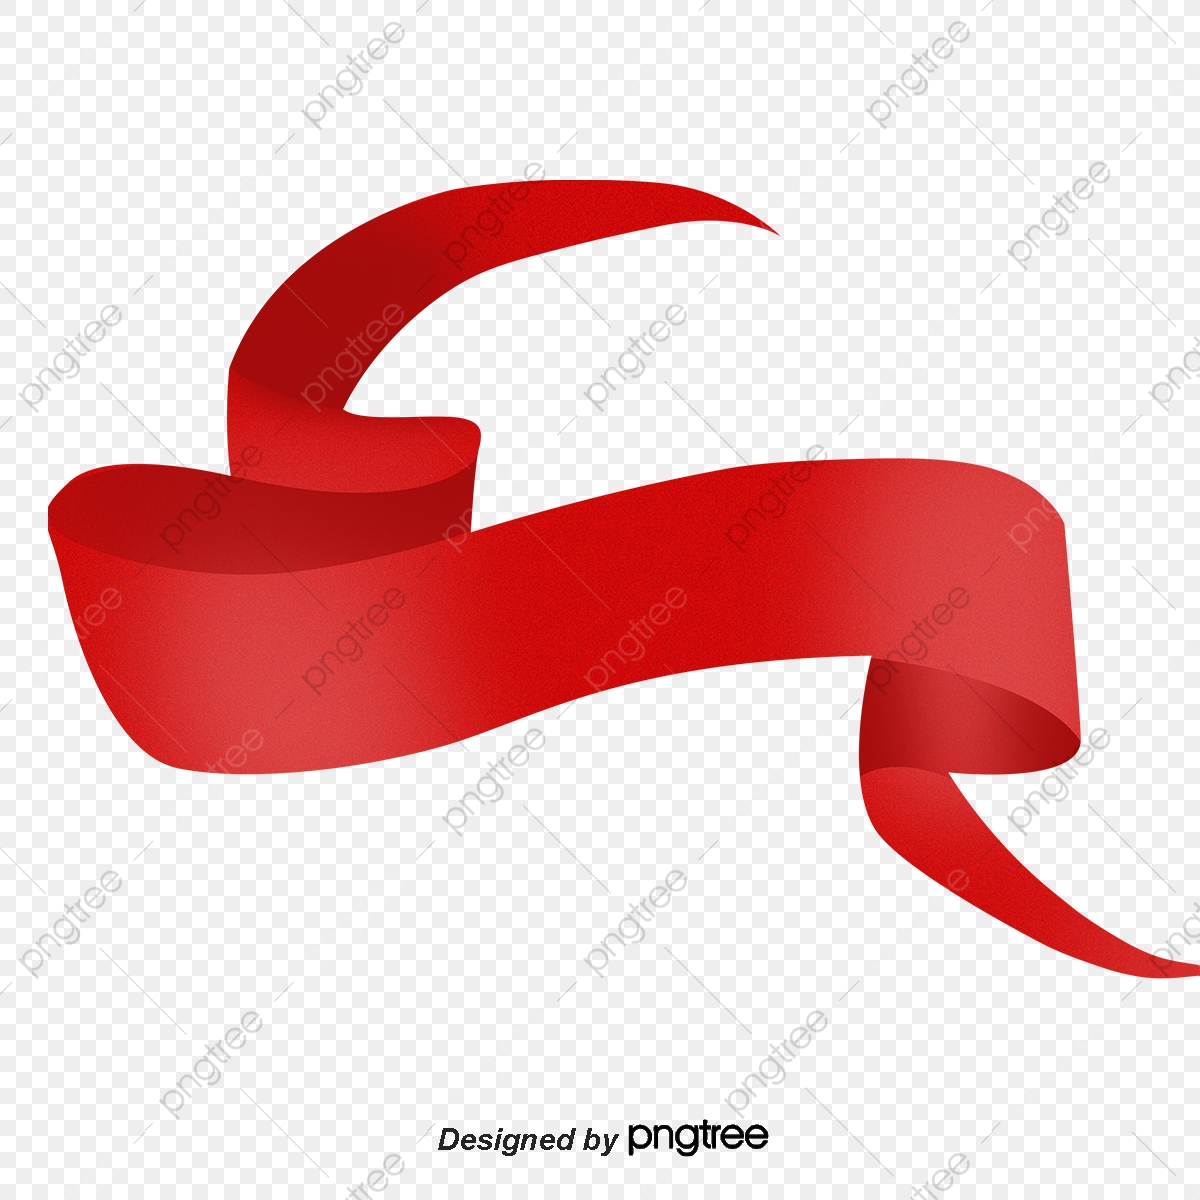 Flowing Ribbons, Red, Ribbon, Art PNG Transparent Clipart Image and.